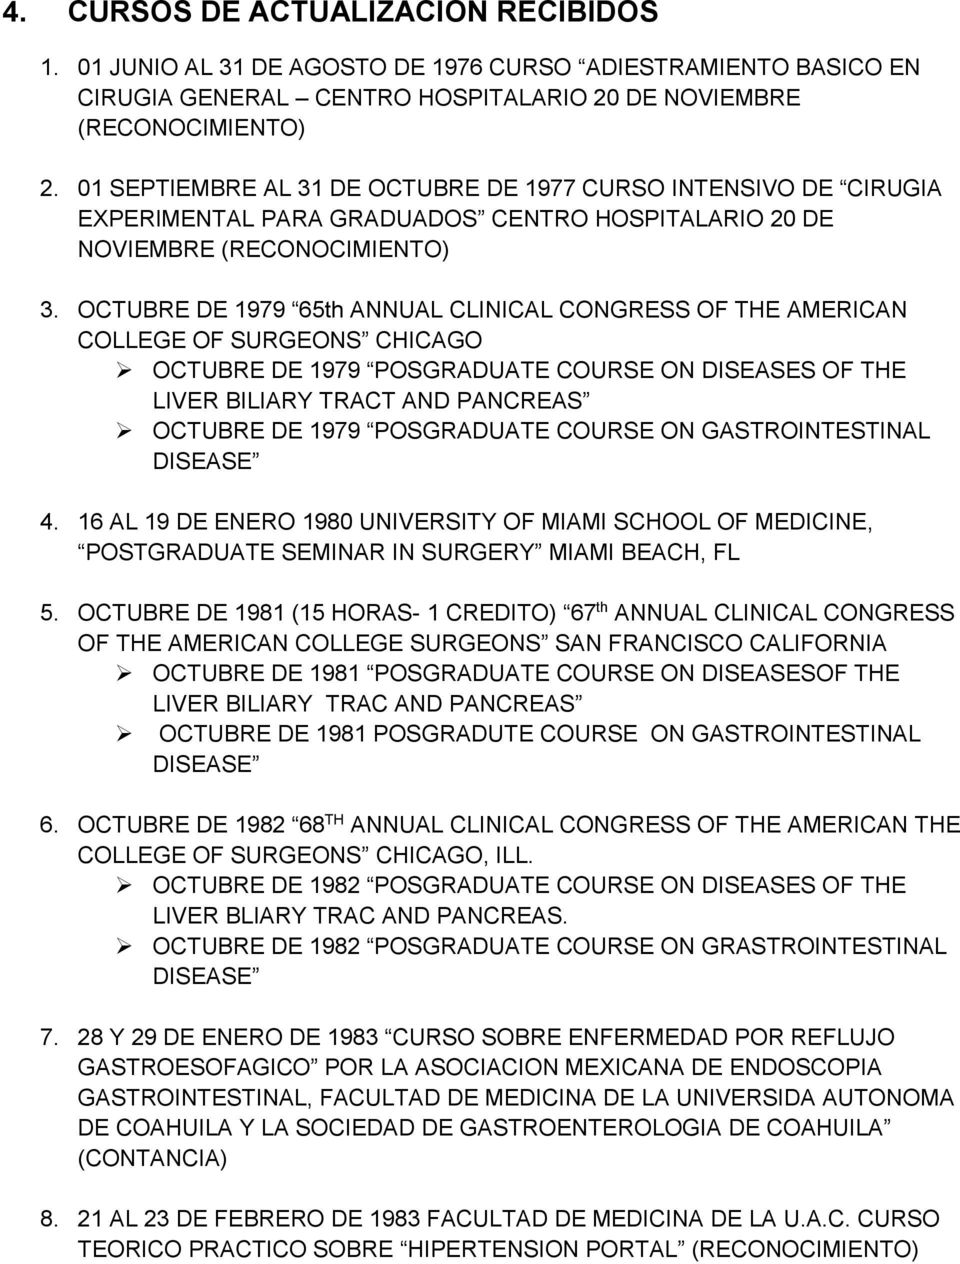 OCTUBRE DE 1979 65th ANNUAL CLINICAL CONGRESS OF THE AMERICAN COLLEGE OF SURGEONS CHICAGO OCTUBRE DE 1979 POSGRADUATE COURSE ON DISEASES OF THE LIVER BILIARY TRACT AND PANCREAS OCTUBRE DE 1979